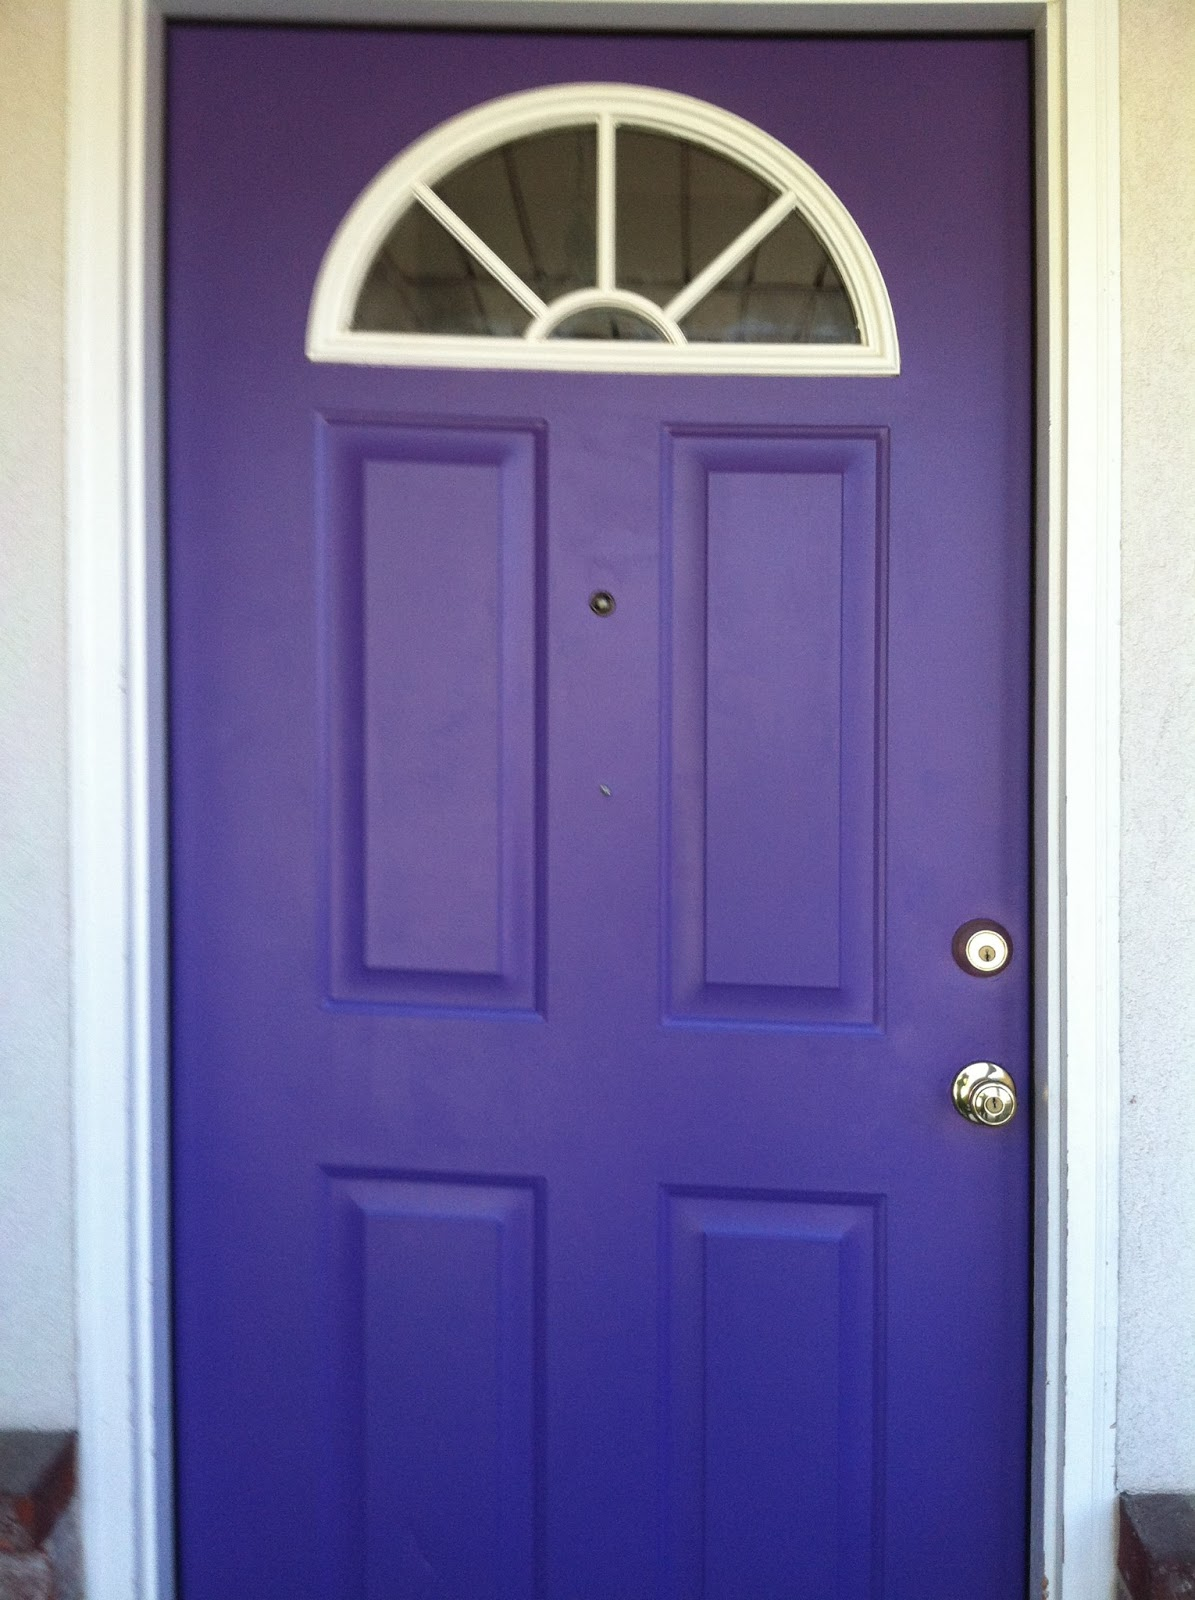 1600 #3E3381 Purple War: New Front Door wallpaper Purple Front Doors 47051195